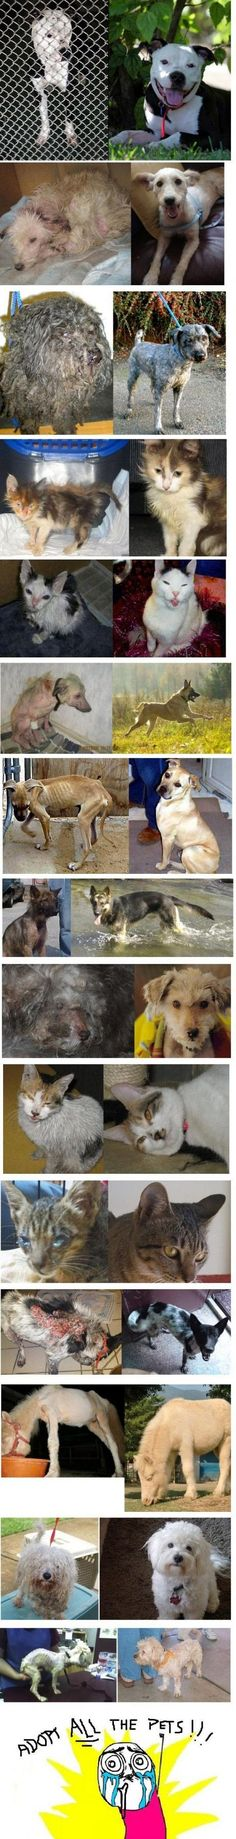 Before and after photos of rescued animals.